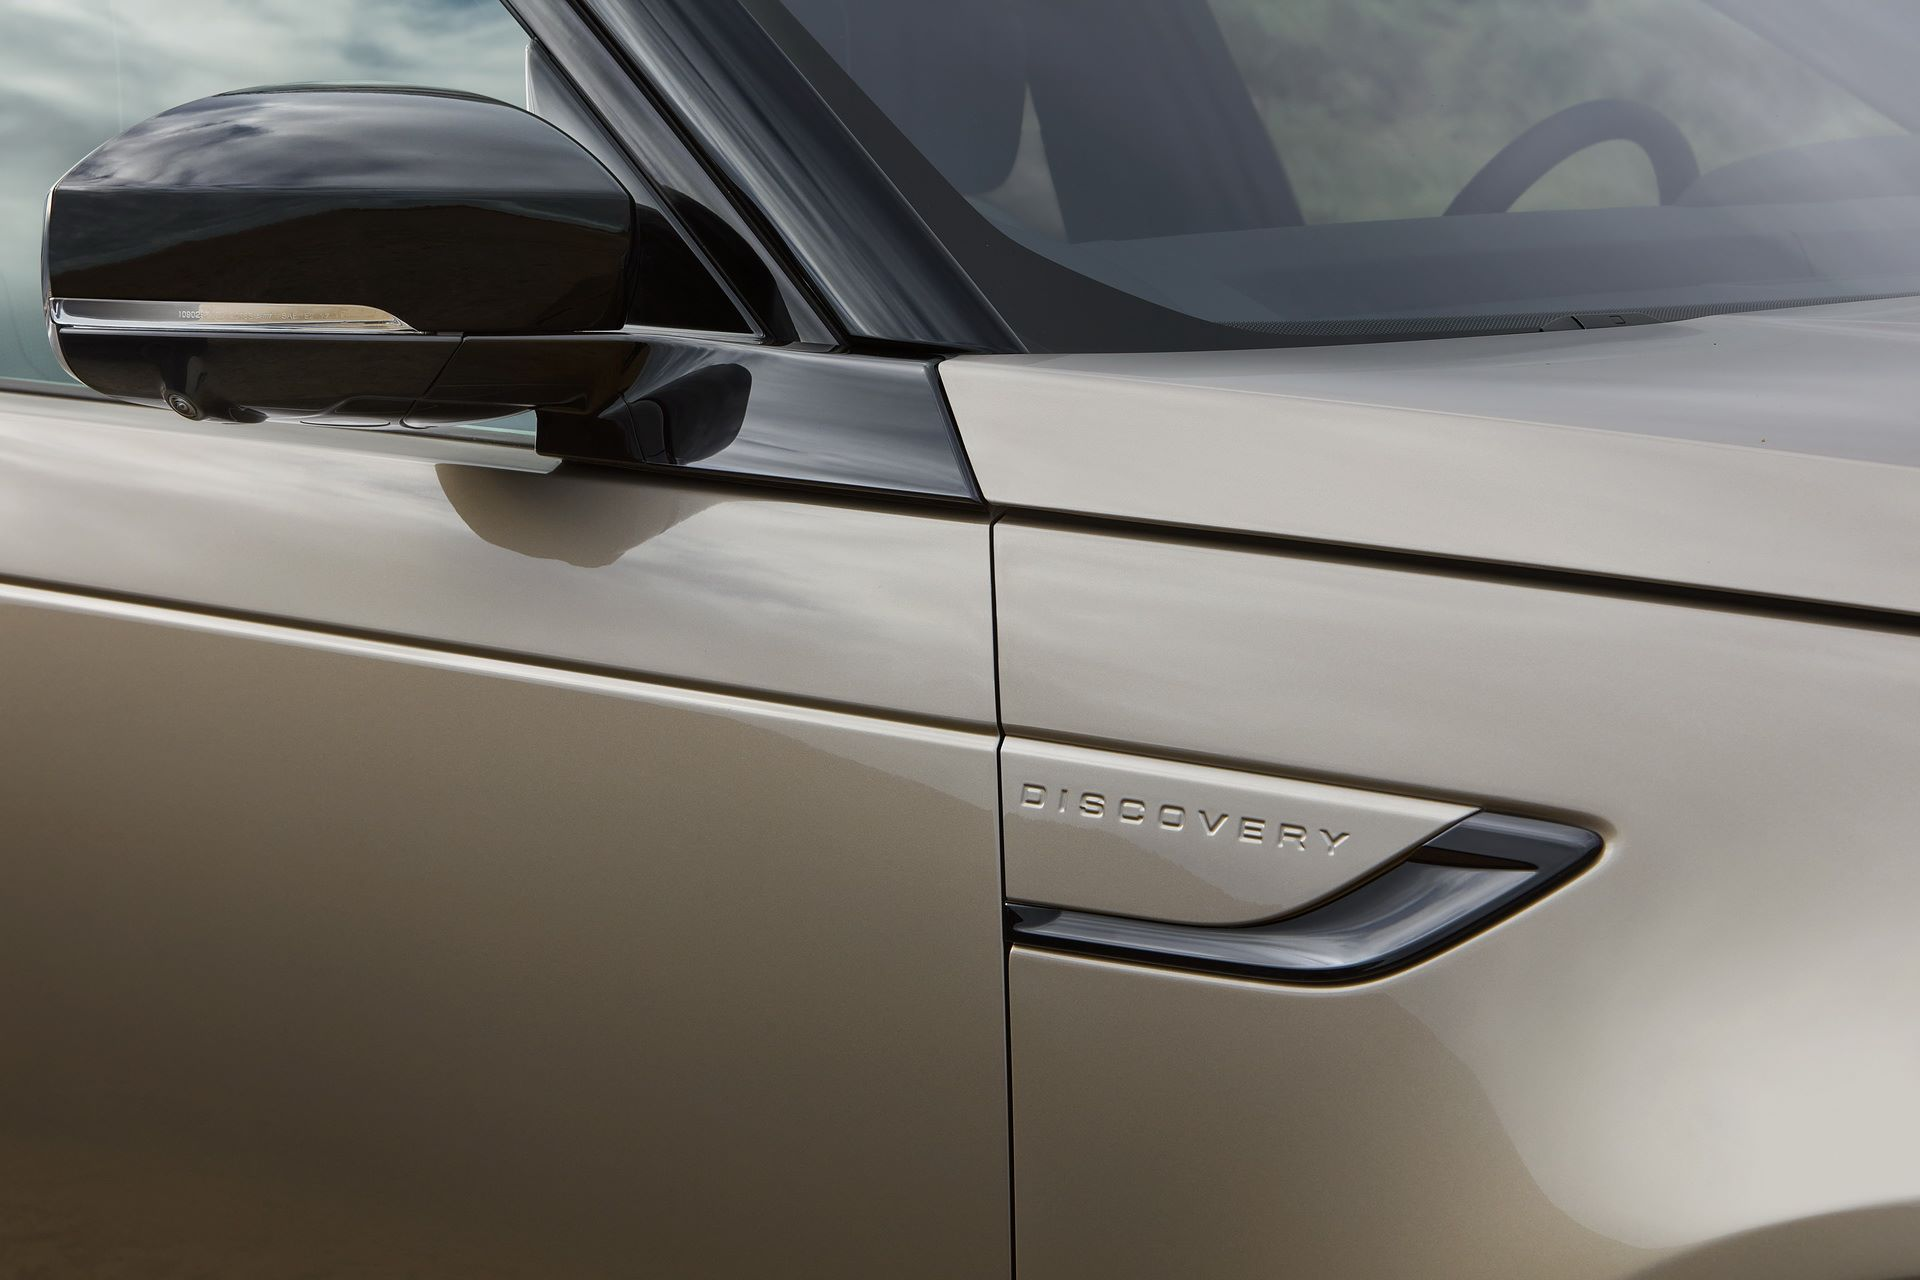 2021-Land-Rover-Discovery-17-1